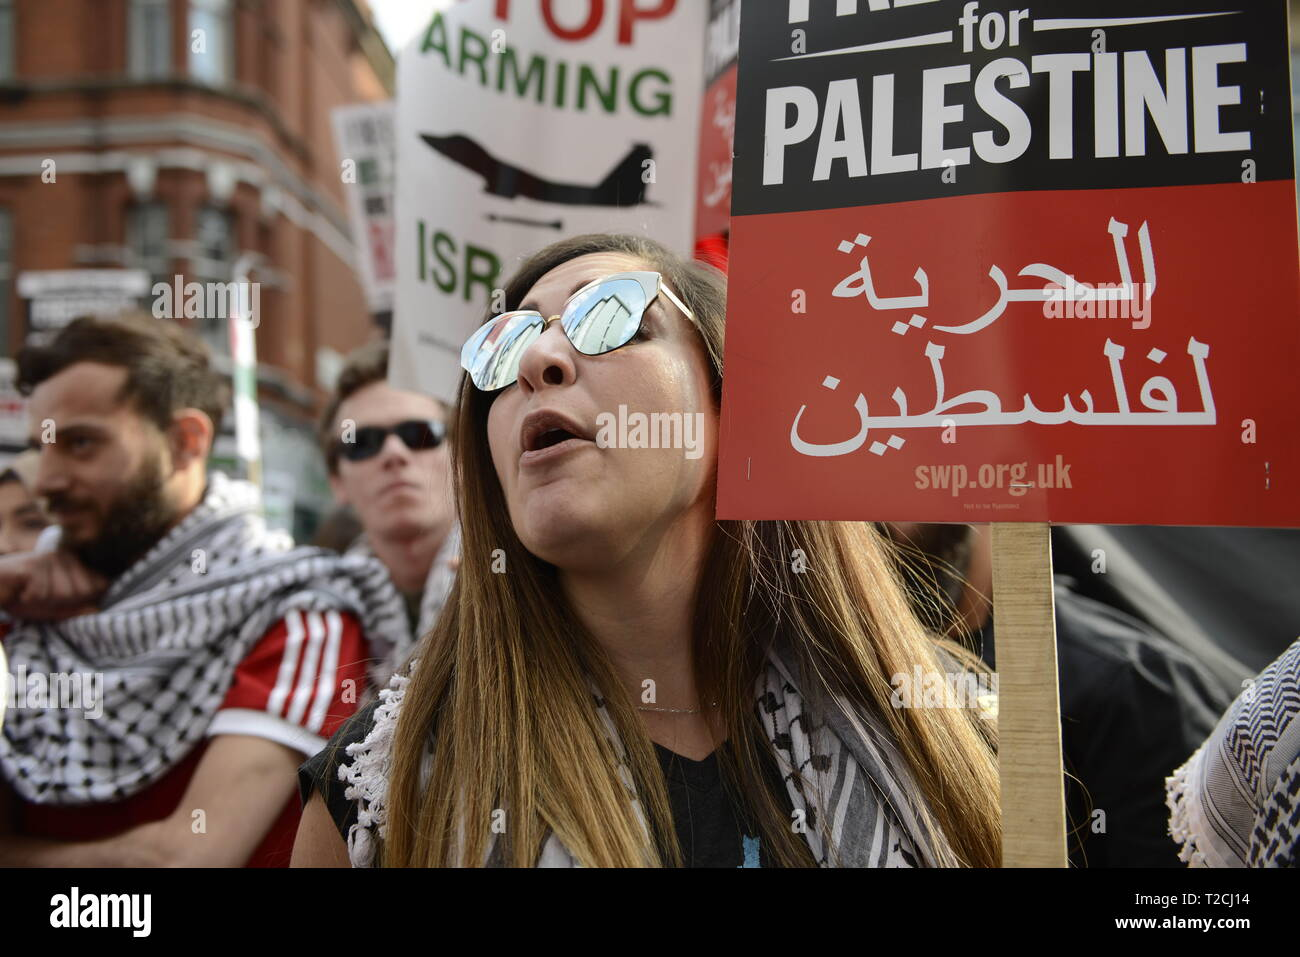 London, Greater London, UK. 30th Mar, 2019. A protester is seen chanting slogans while holding a placard during the Exist, Resist, Return Rally for Palestine in London.People gather outside the Israeli embassy in London to demonstrate against the Israeli government, and to demand respect for Palestinians' fundamental rights to exist, resist and return. Palestinians are calling for global protests to support their right to come back to their villages. Rally was organized by Palestine Solidarity Campaign, Stop the War Coalition, Palestinian Forum in Britain, Friends of Al- Aqsa, - Stock Image